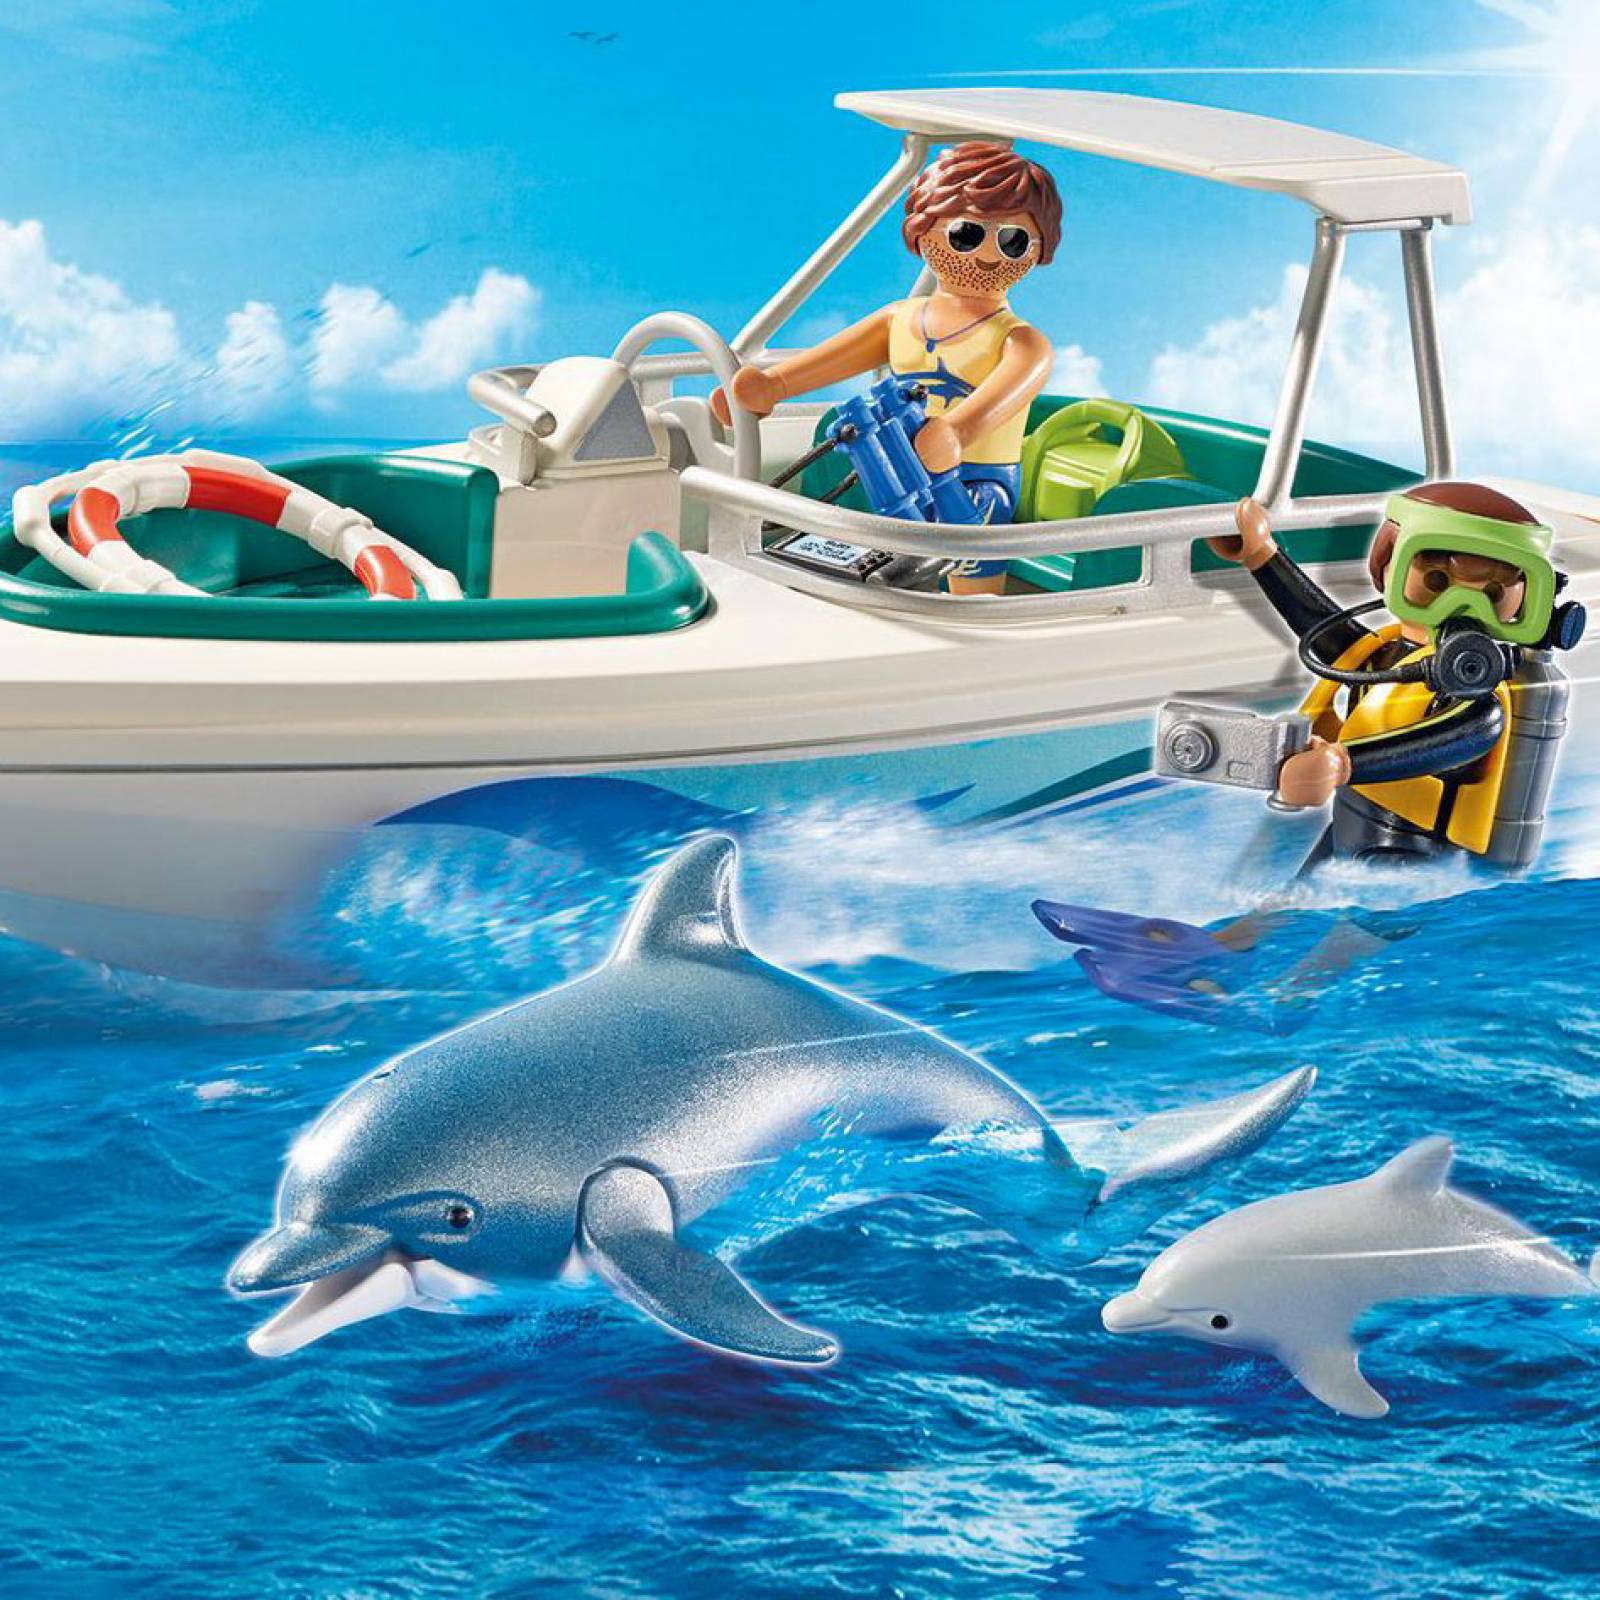 Driving Trip With Speedboat Playmobil 6981 thumbnails